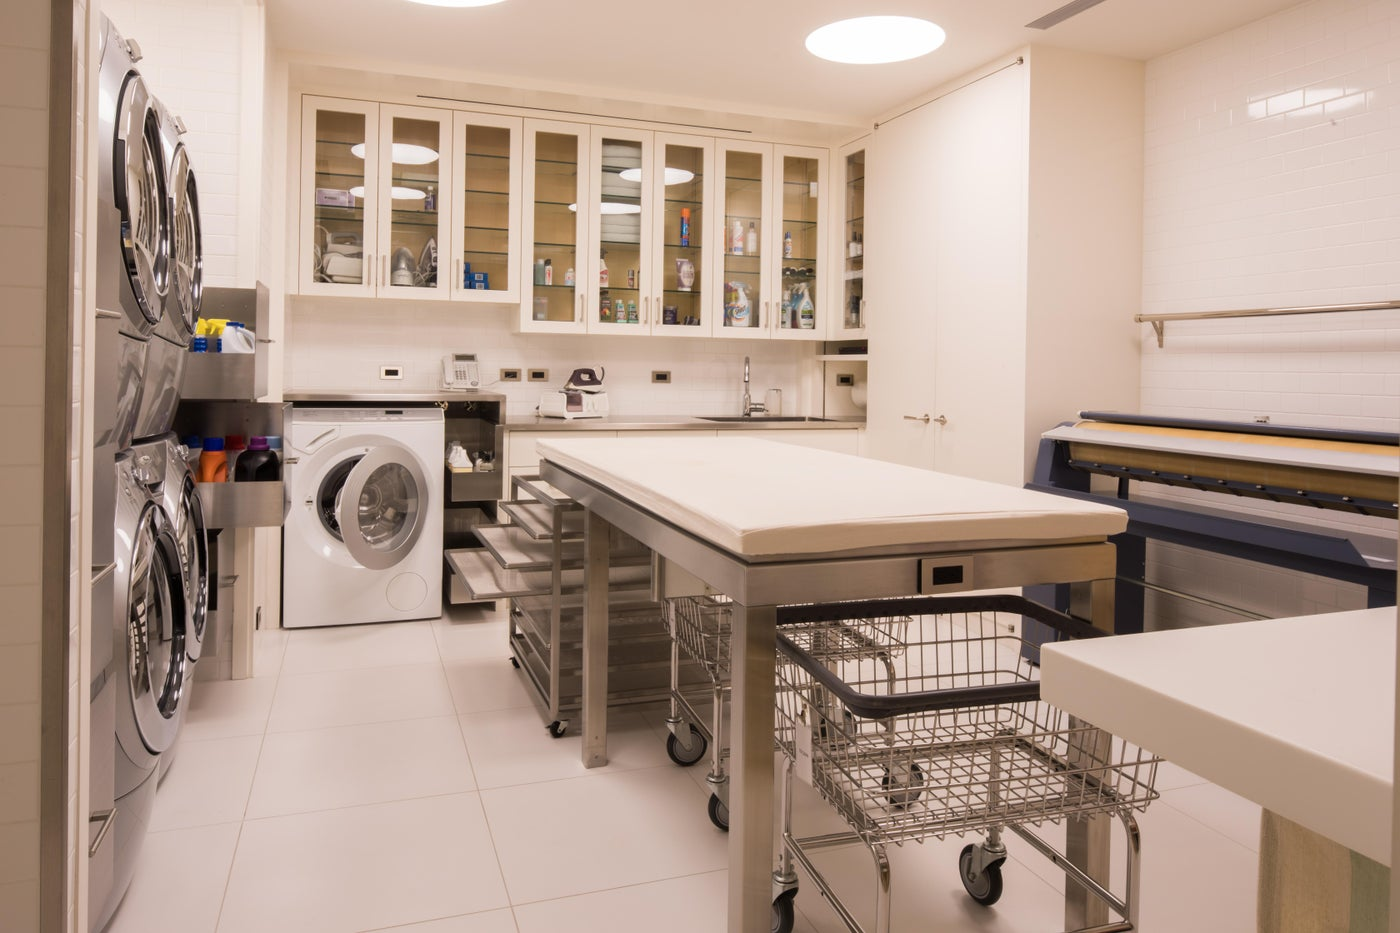 The utilitarian, organized white laundry room has storage for everything.